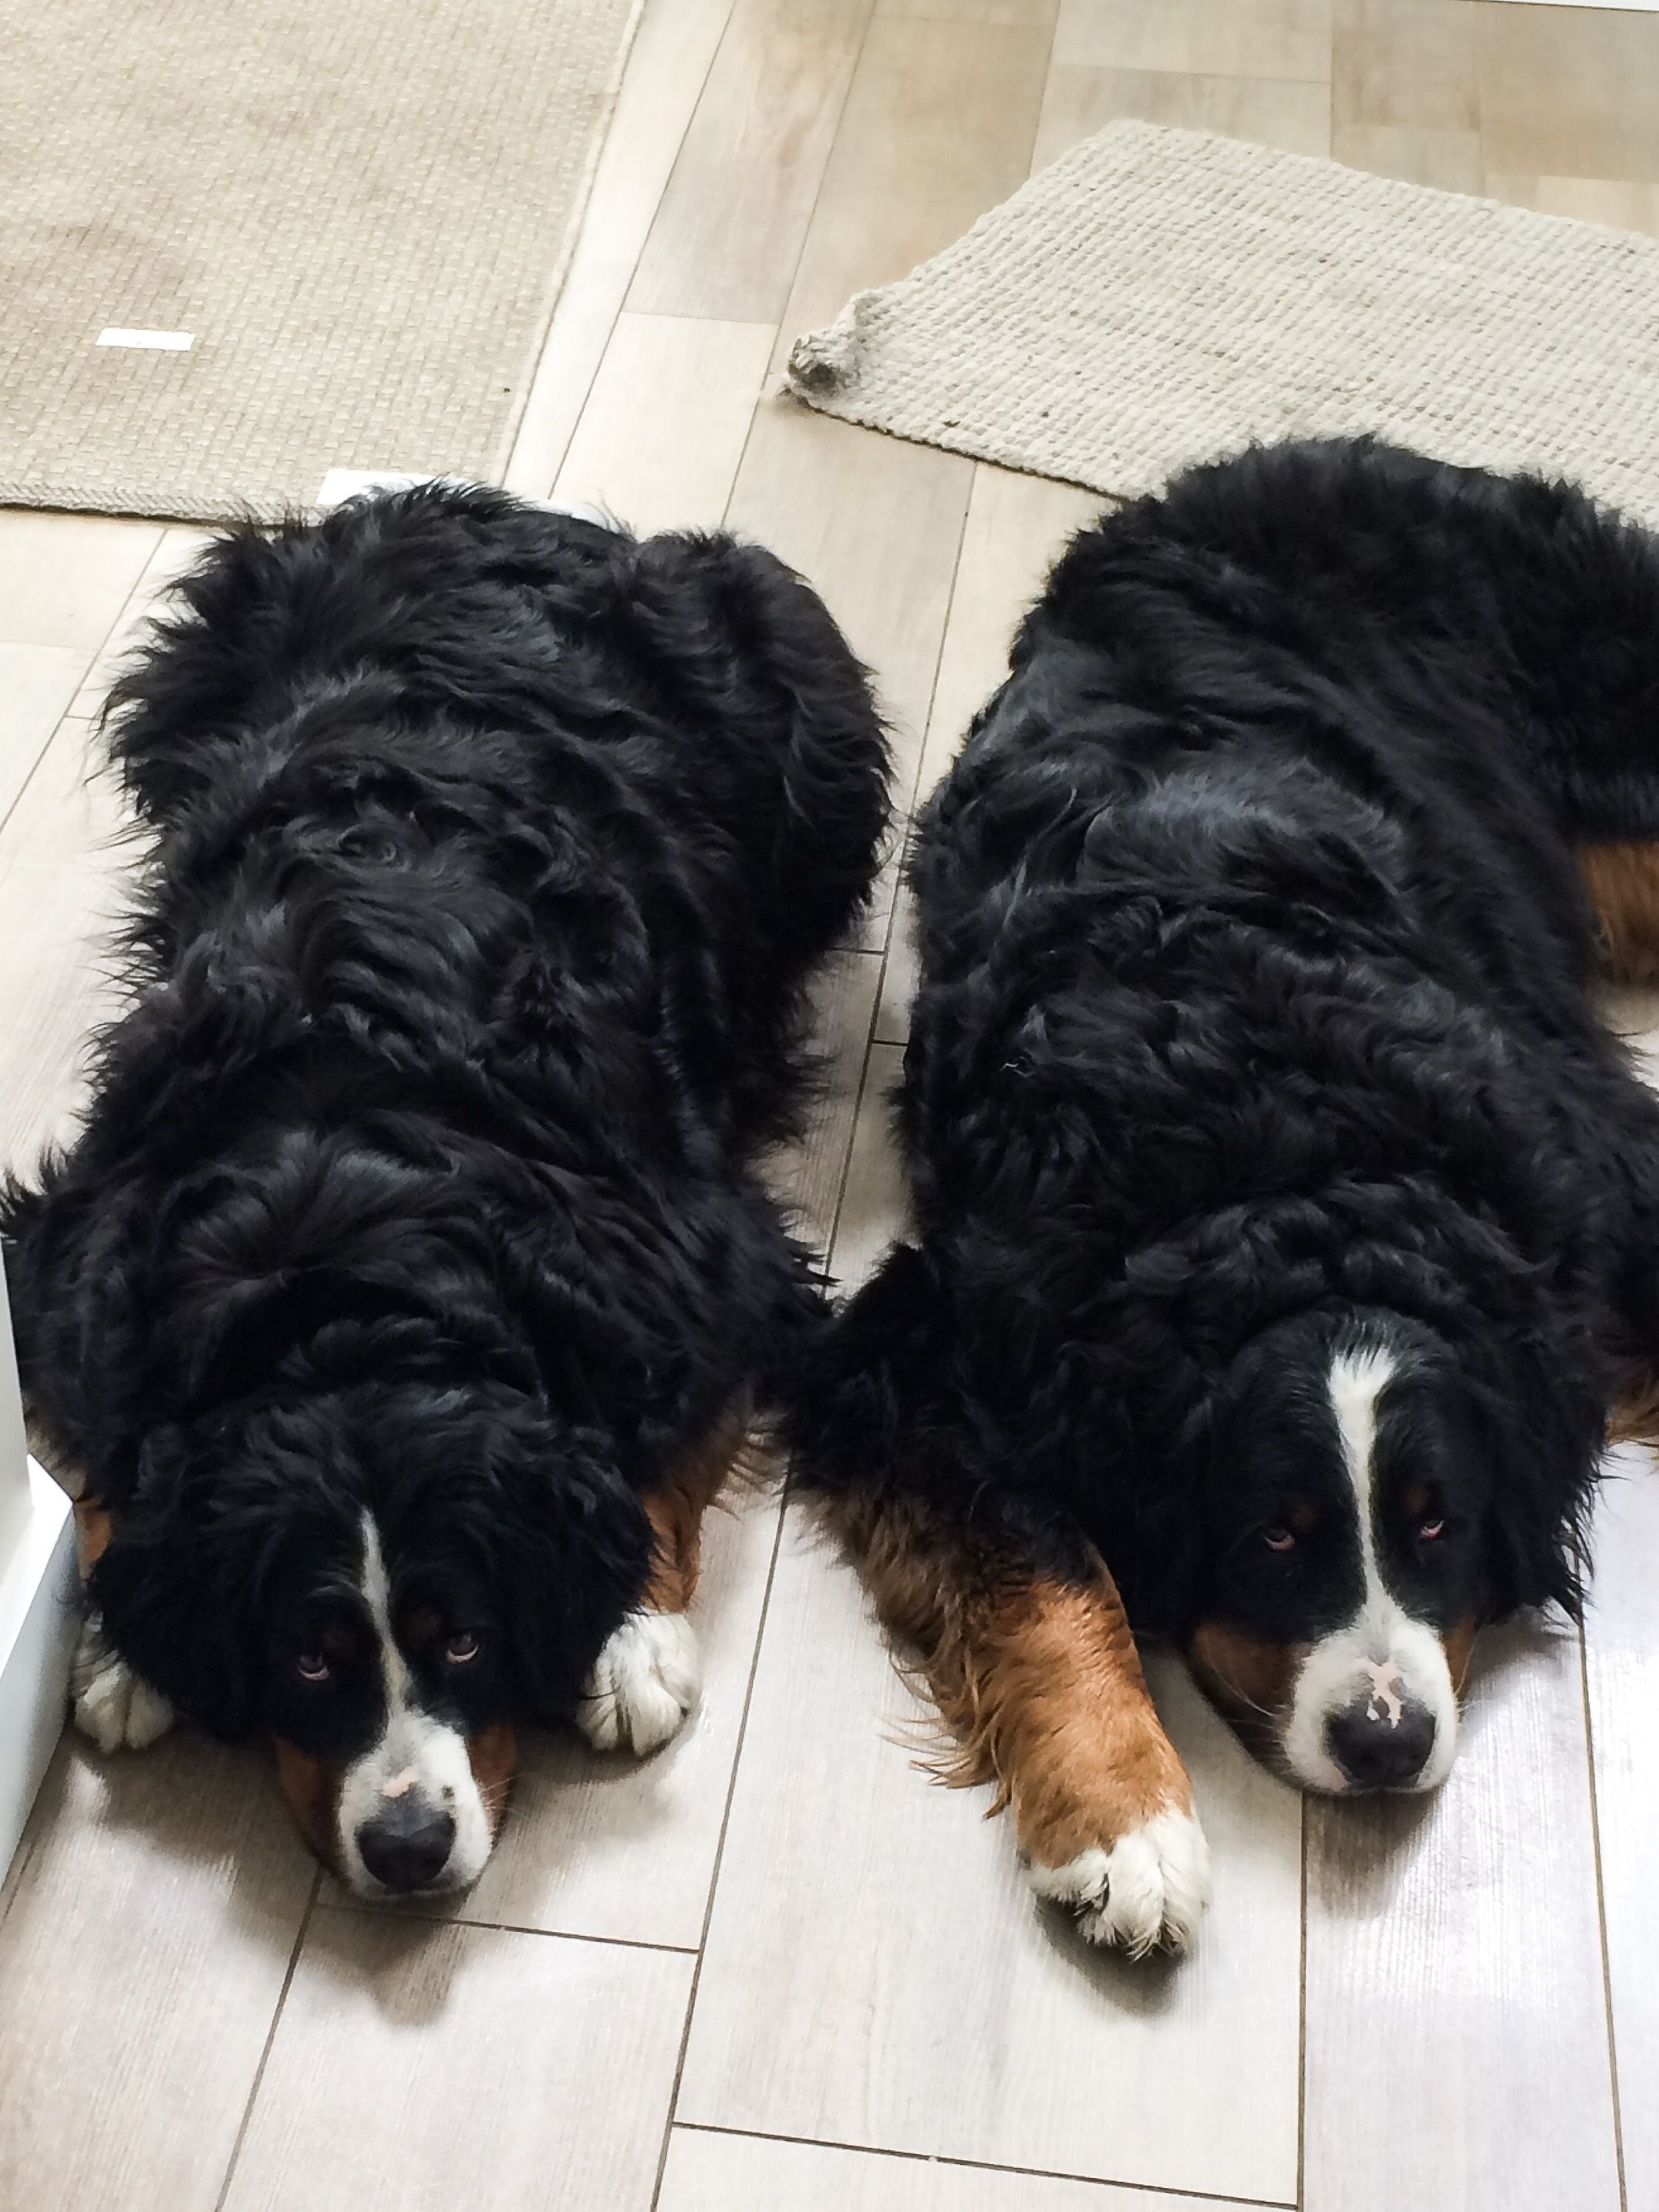 The Look You Get When You Promise Someone That Your Going For A Walk But You Go To The Bathroom F Bernese Mountain Dog Mountain Dogs Bernese Mountain Dog Puppy